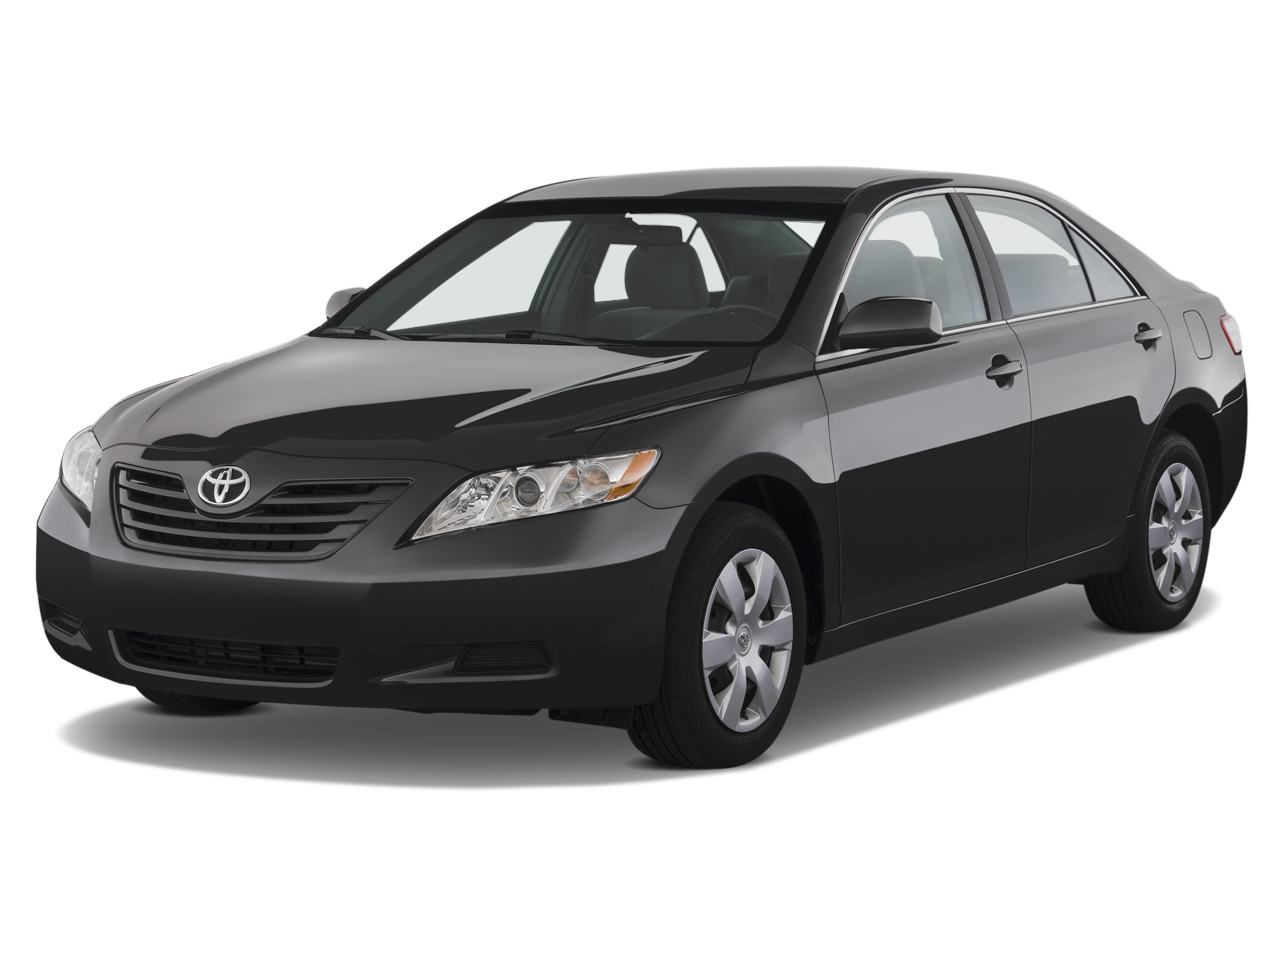 2009 camry xle manual woodworkers